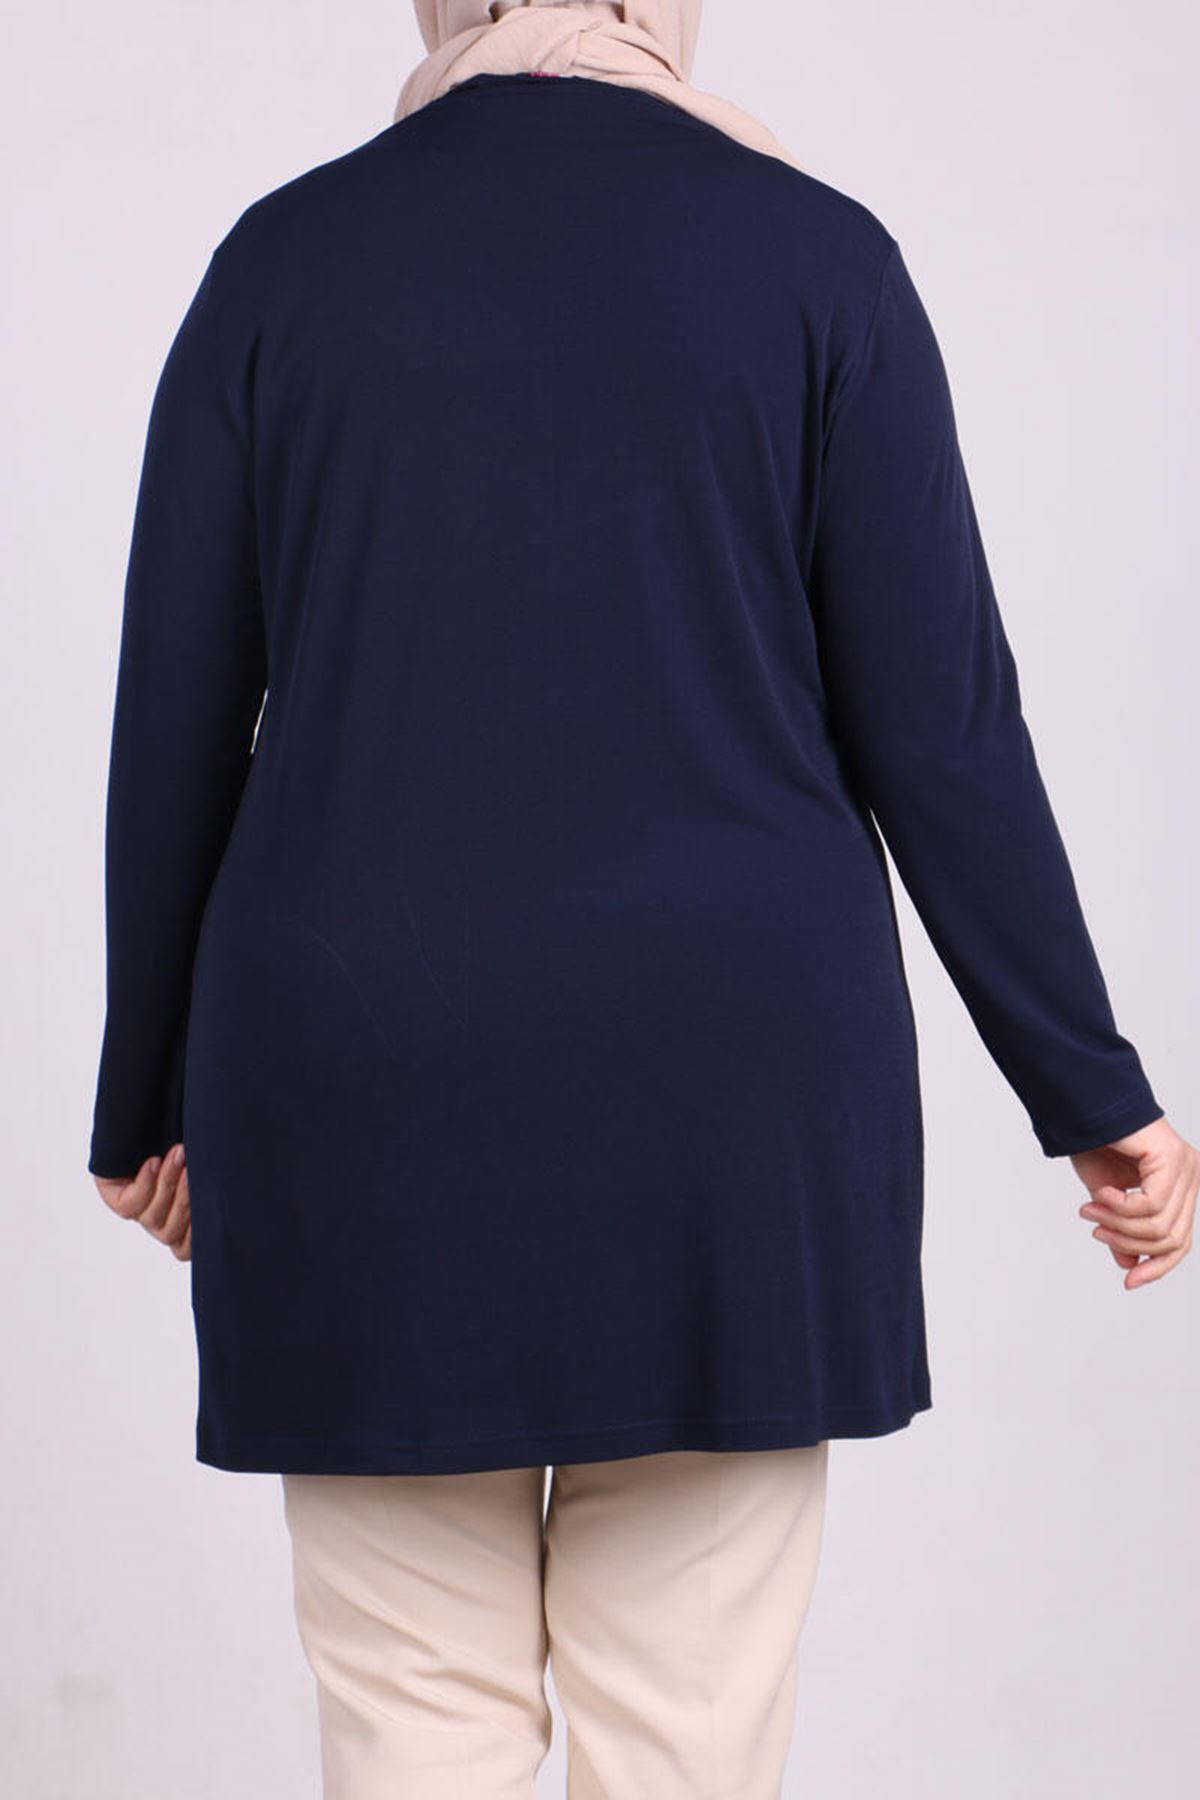 3140  Plus Size Hook and Eye Front Jacket - Navy Blue